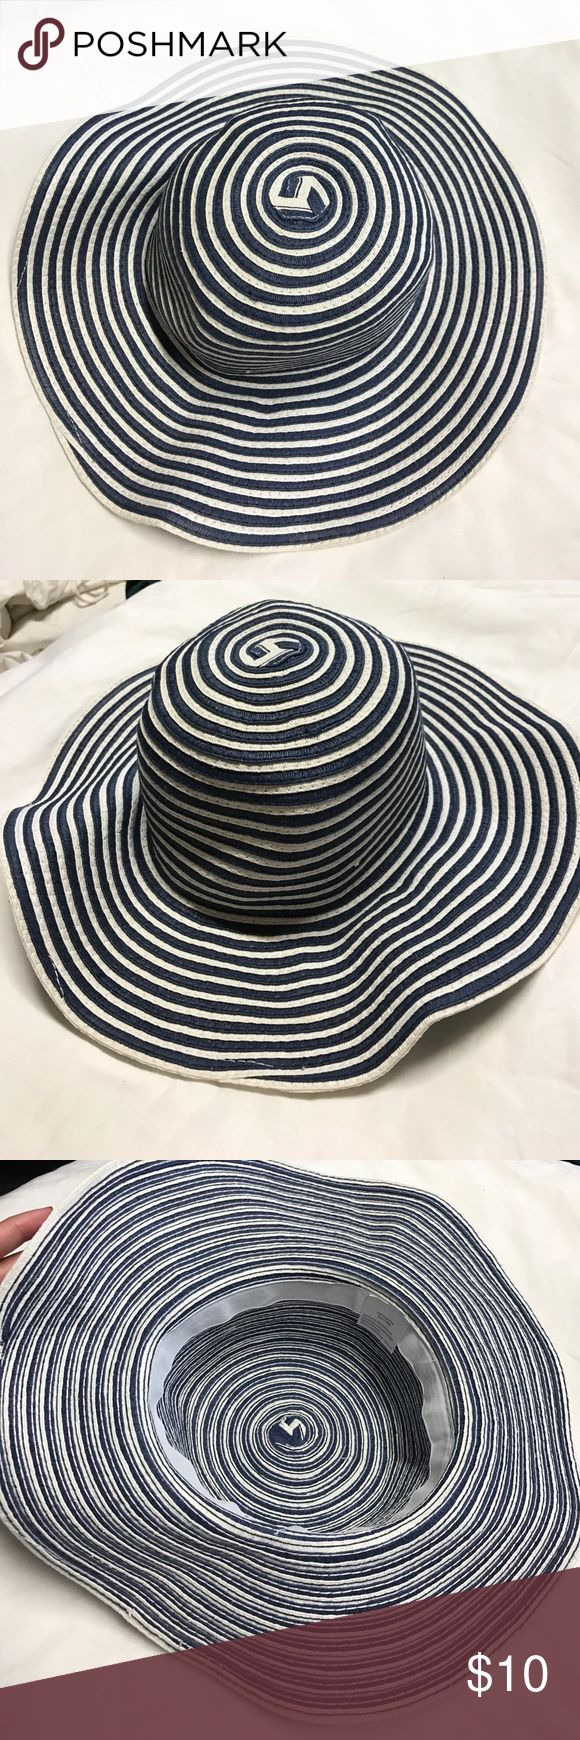 Blue and white hat Blue and white hat used once or twice great condition Accessories Hats